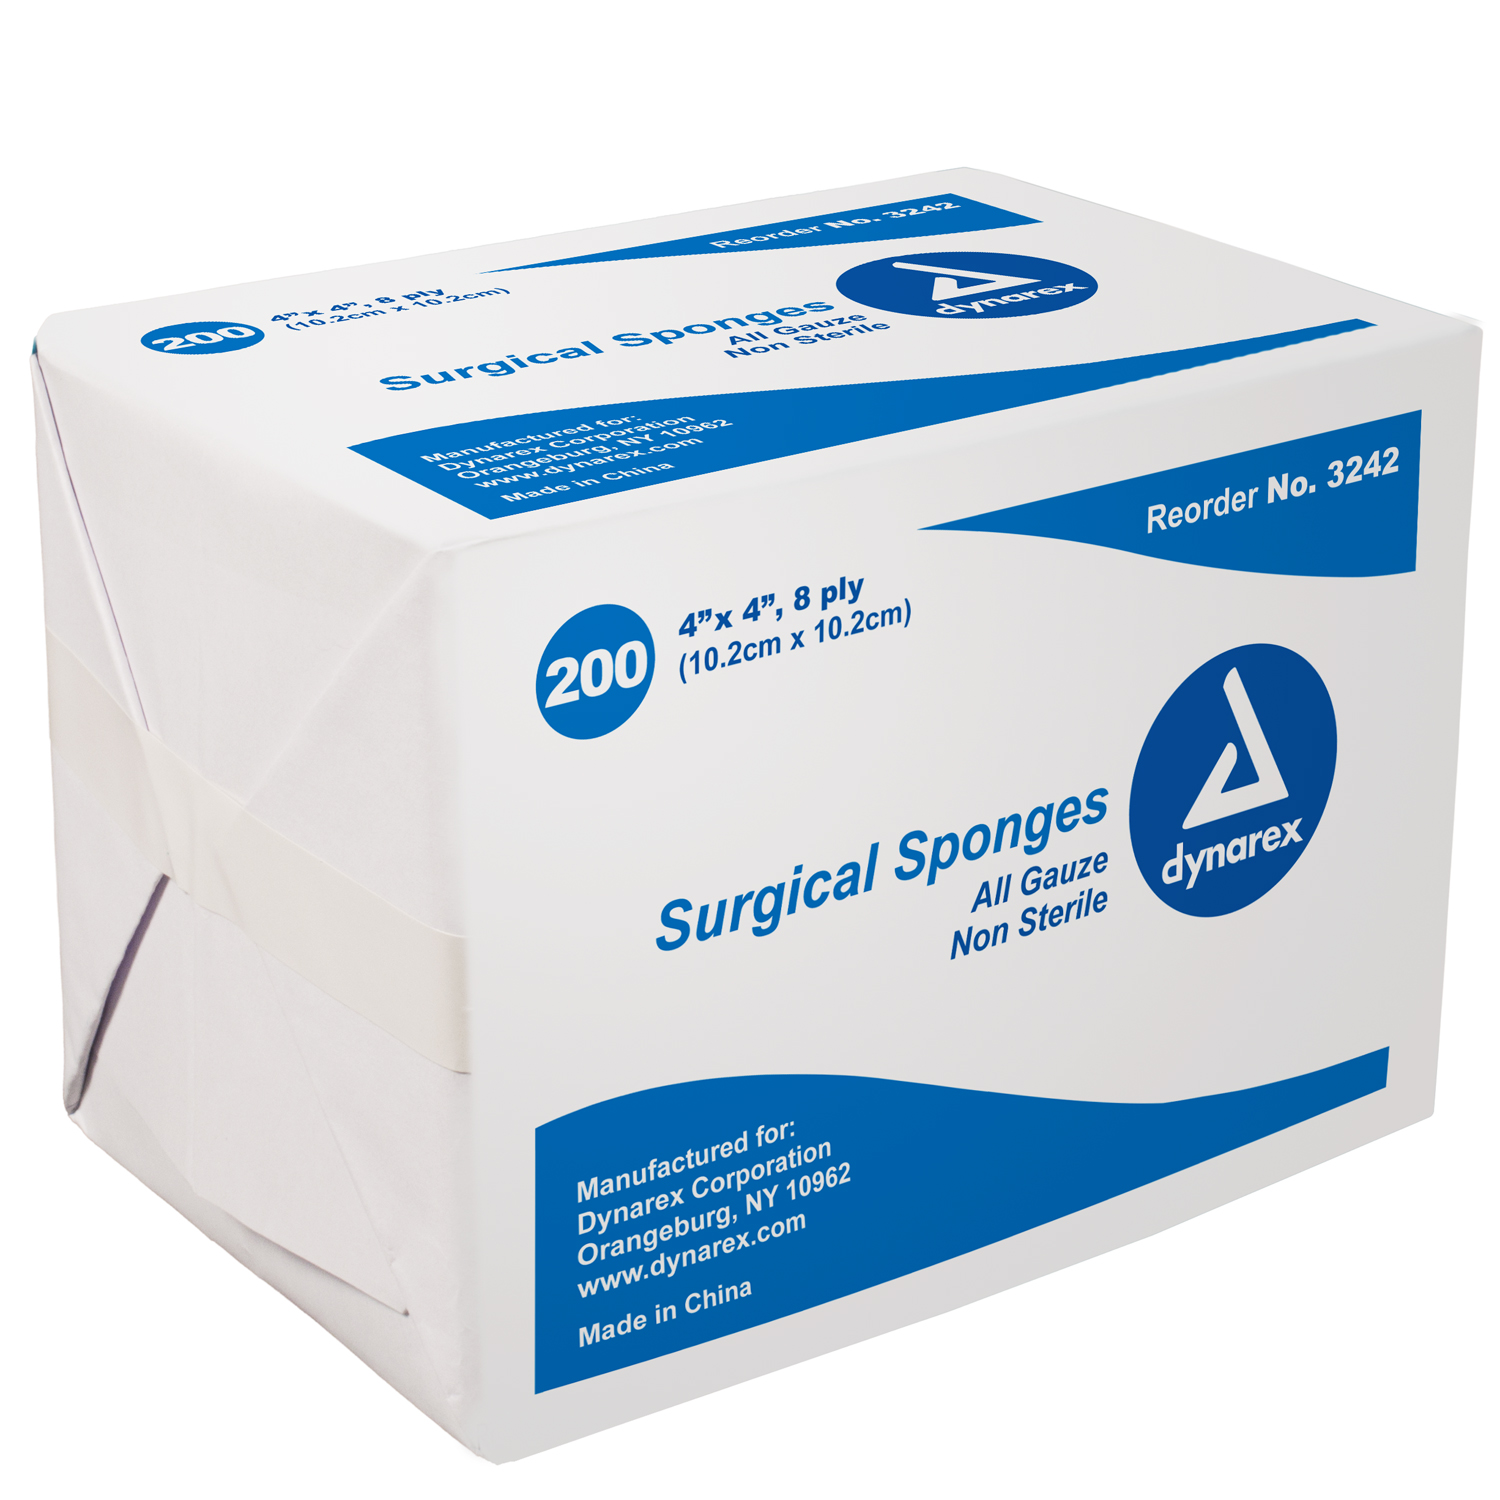 4x4 Non Sterile Gauze: Bag of 200 image